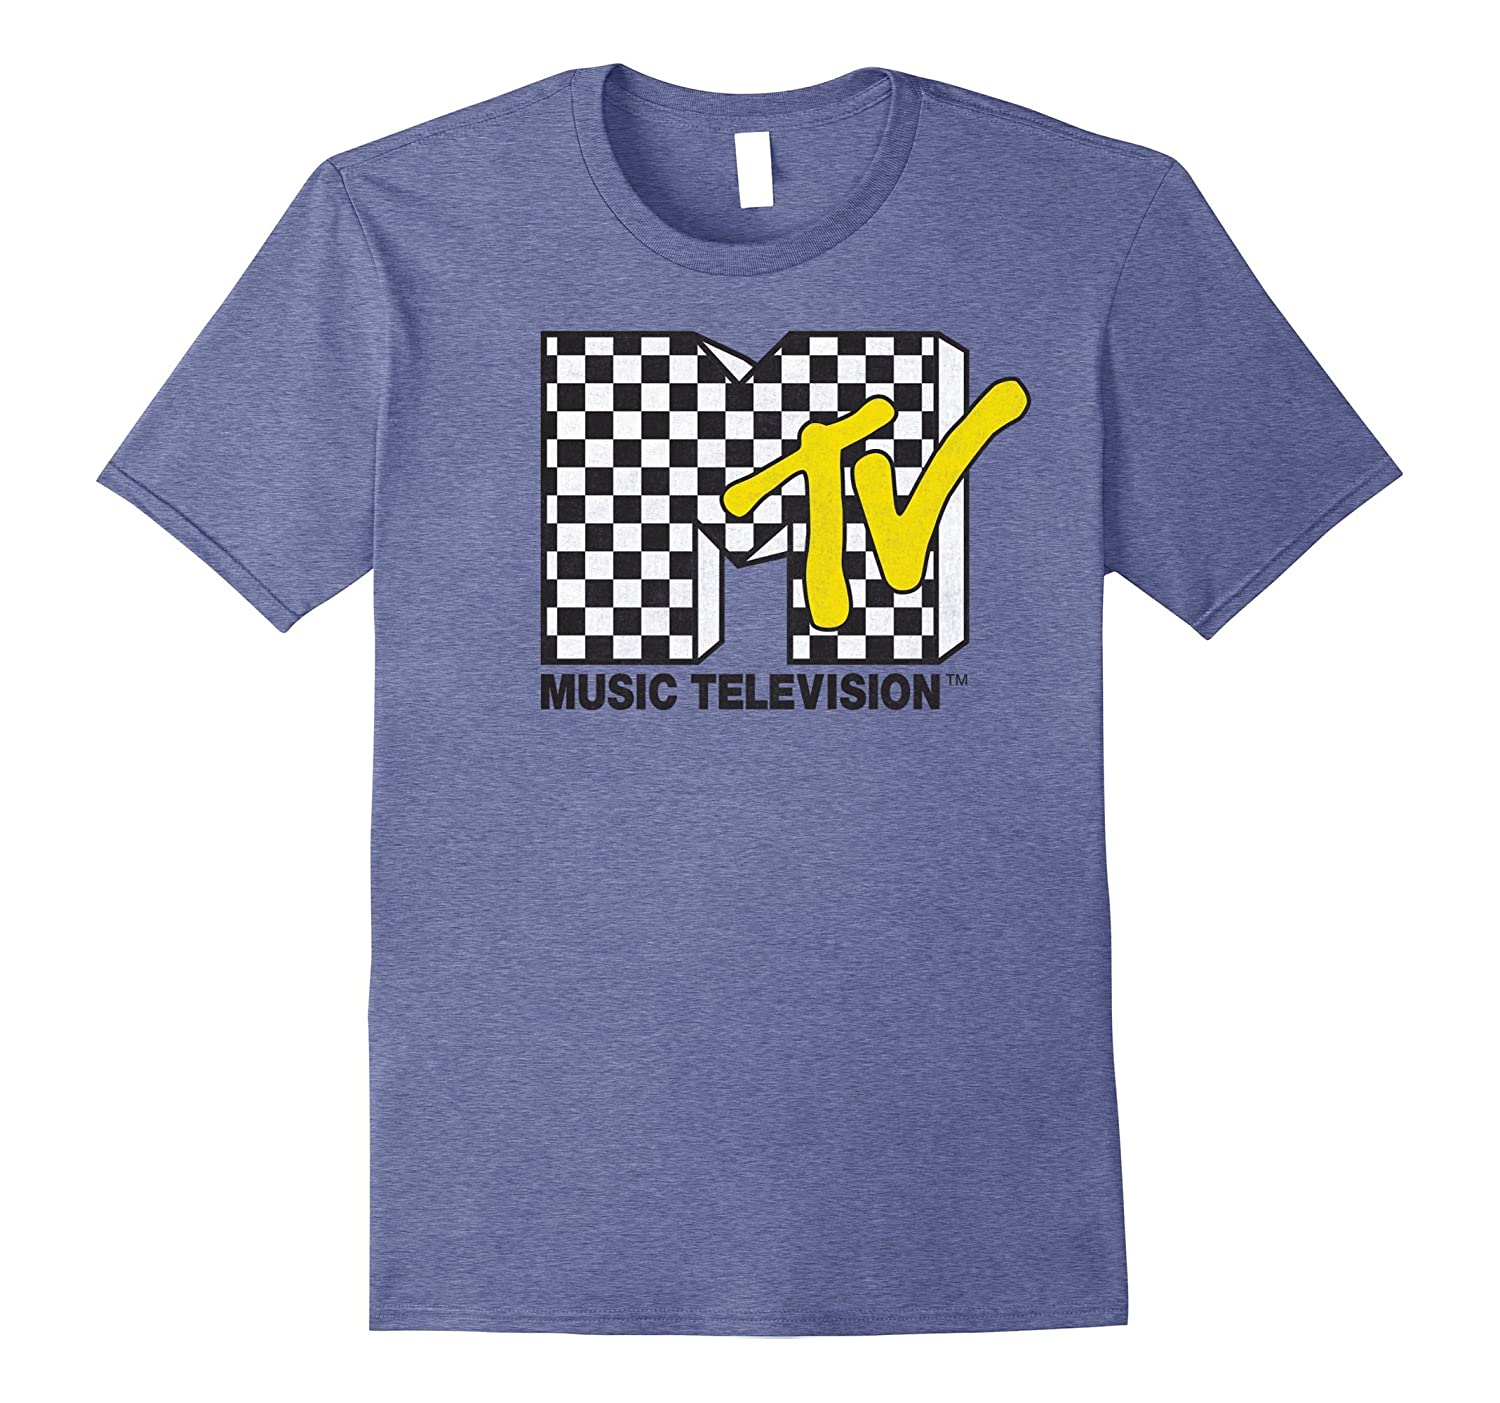 eb4d35ff68 MTV Classic Vans Checker Logo Rock T-Shirt-ah my shirt one gift ...